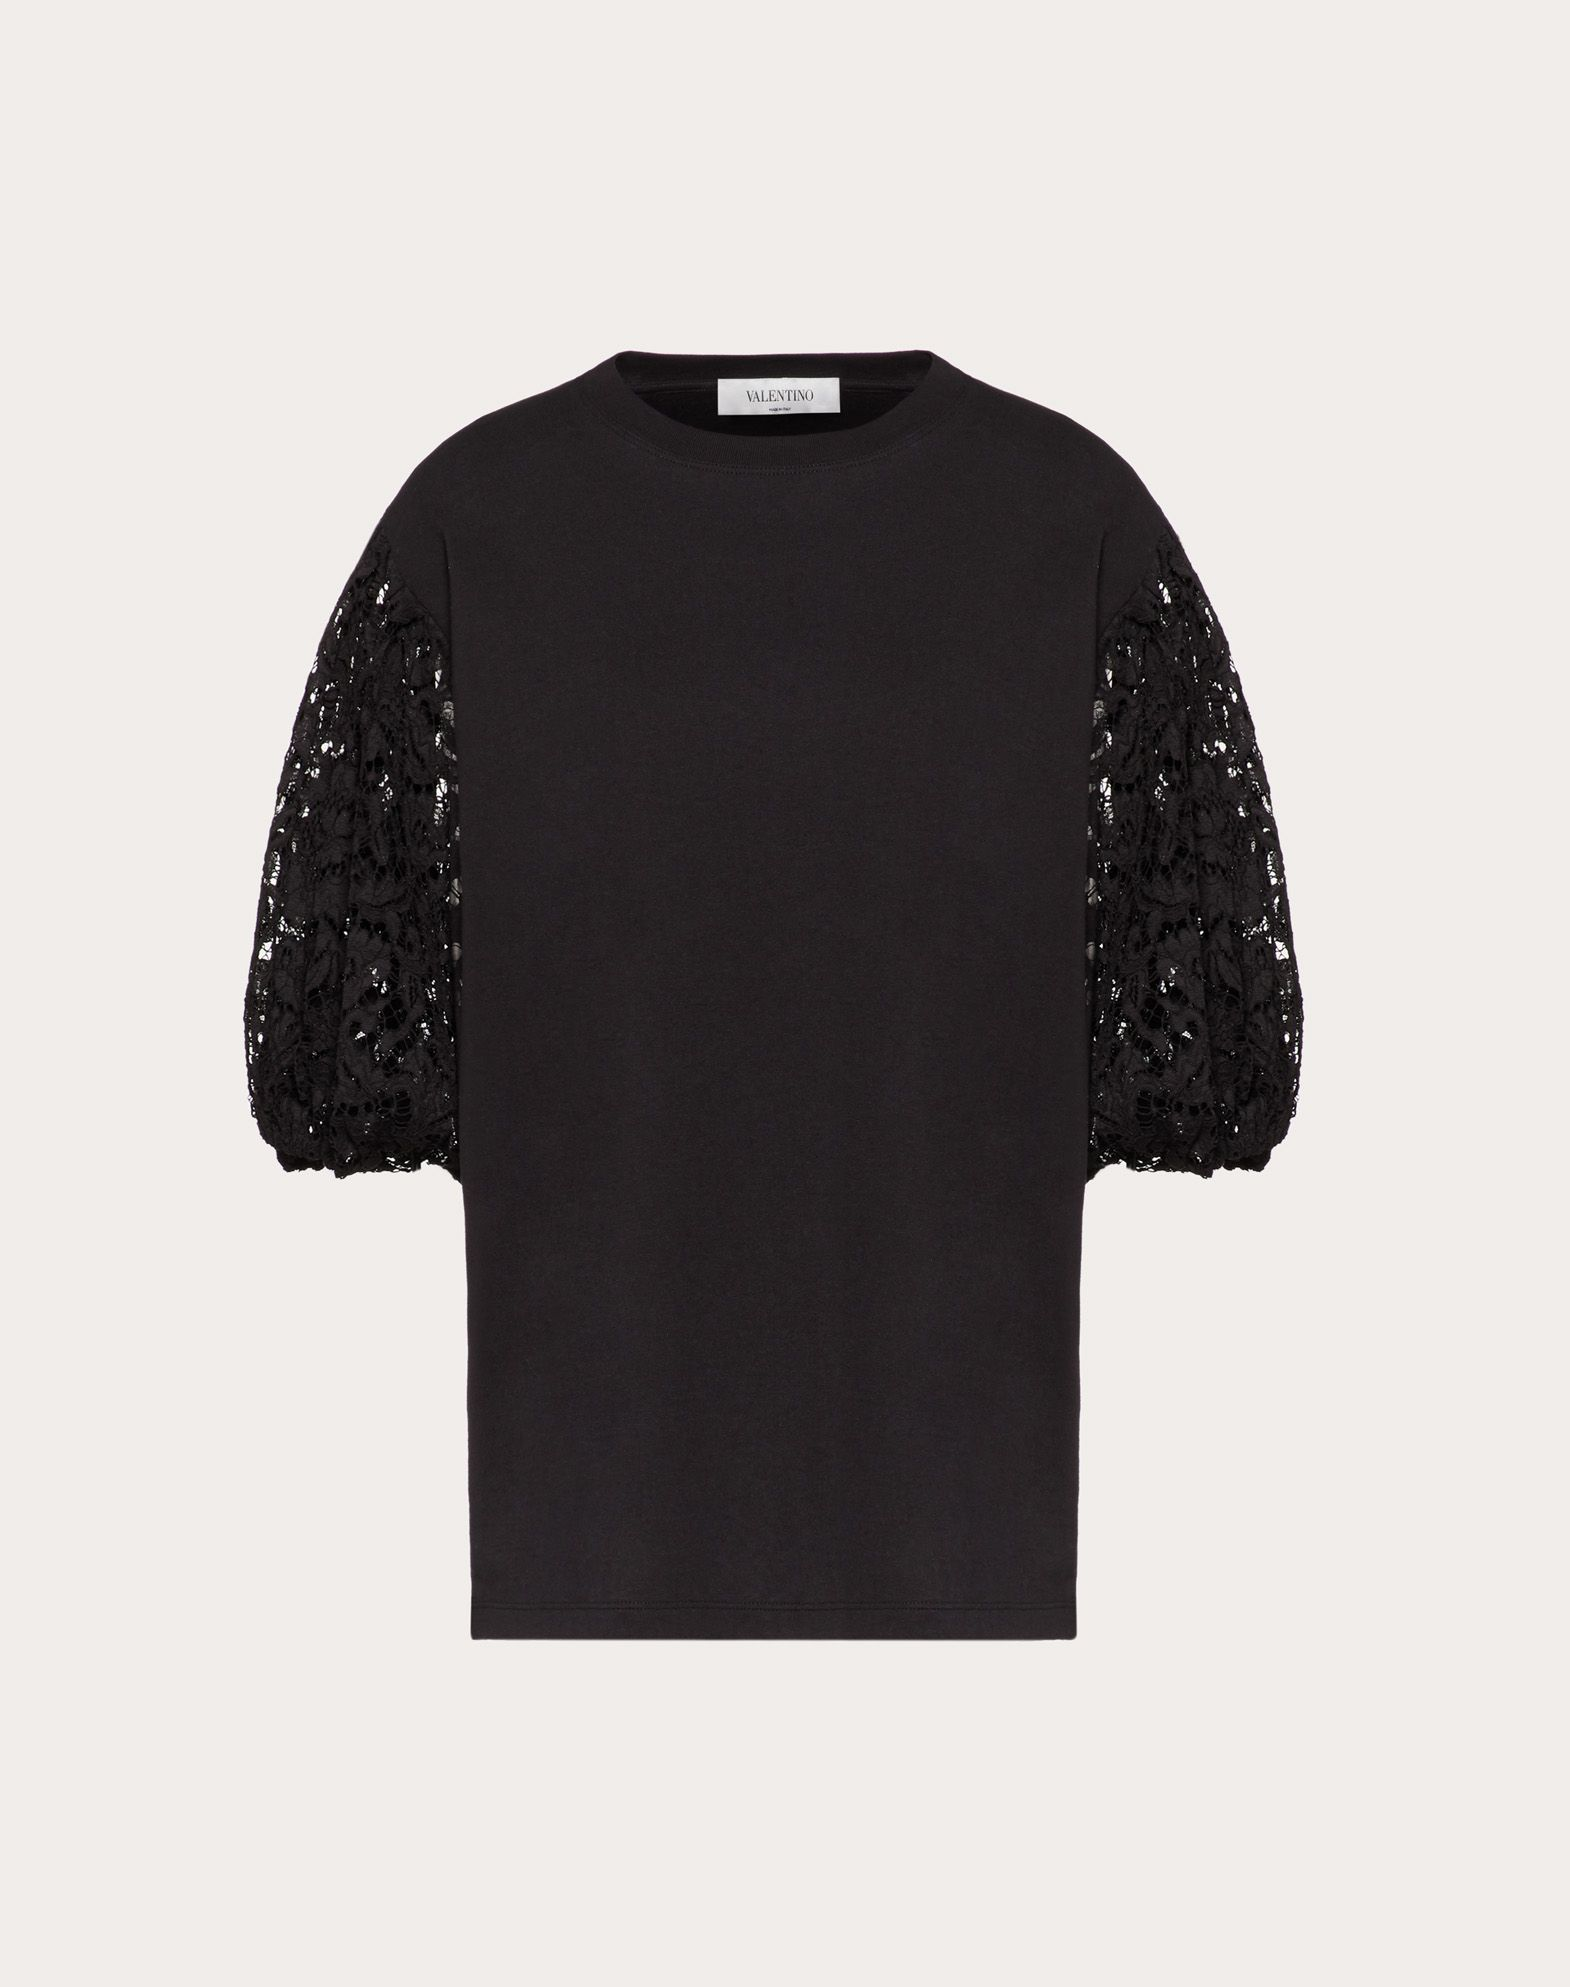 T-shirt in Jersey ed Heavy Lace